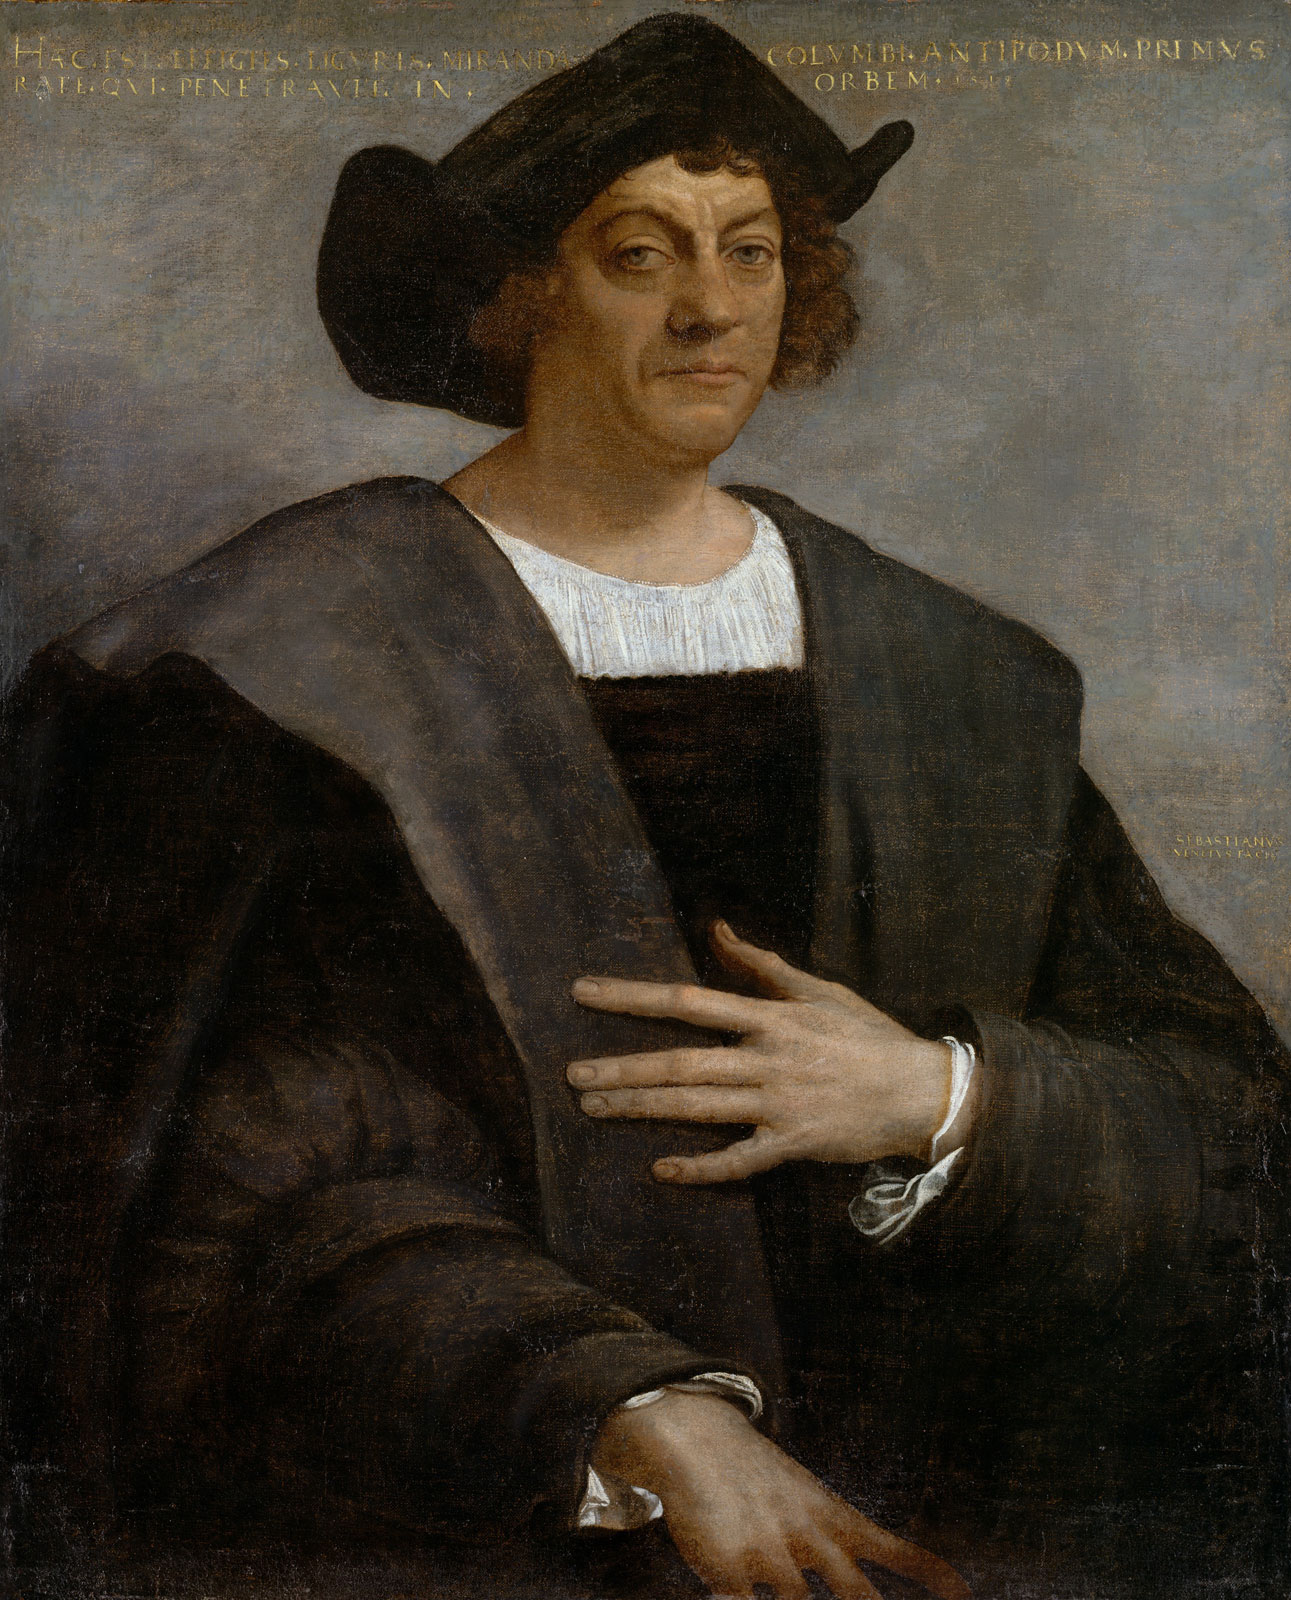 Christopher Columbus: Great hero or arch villain?